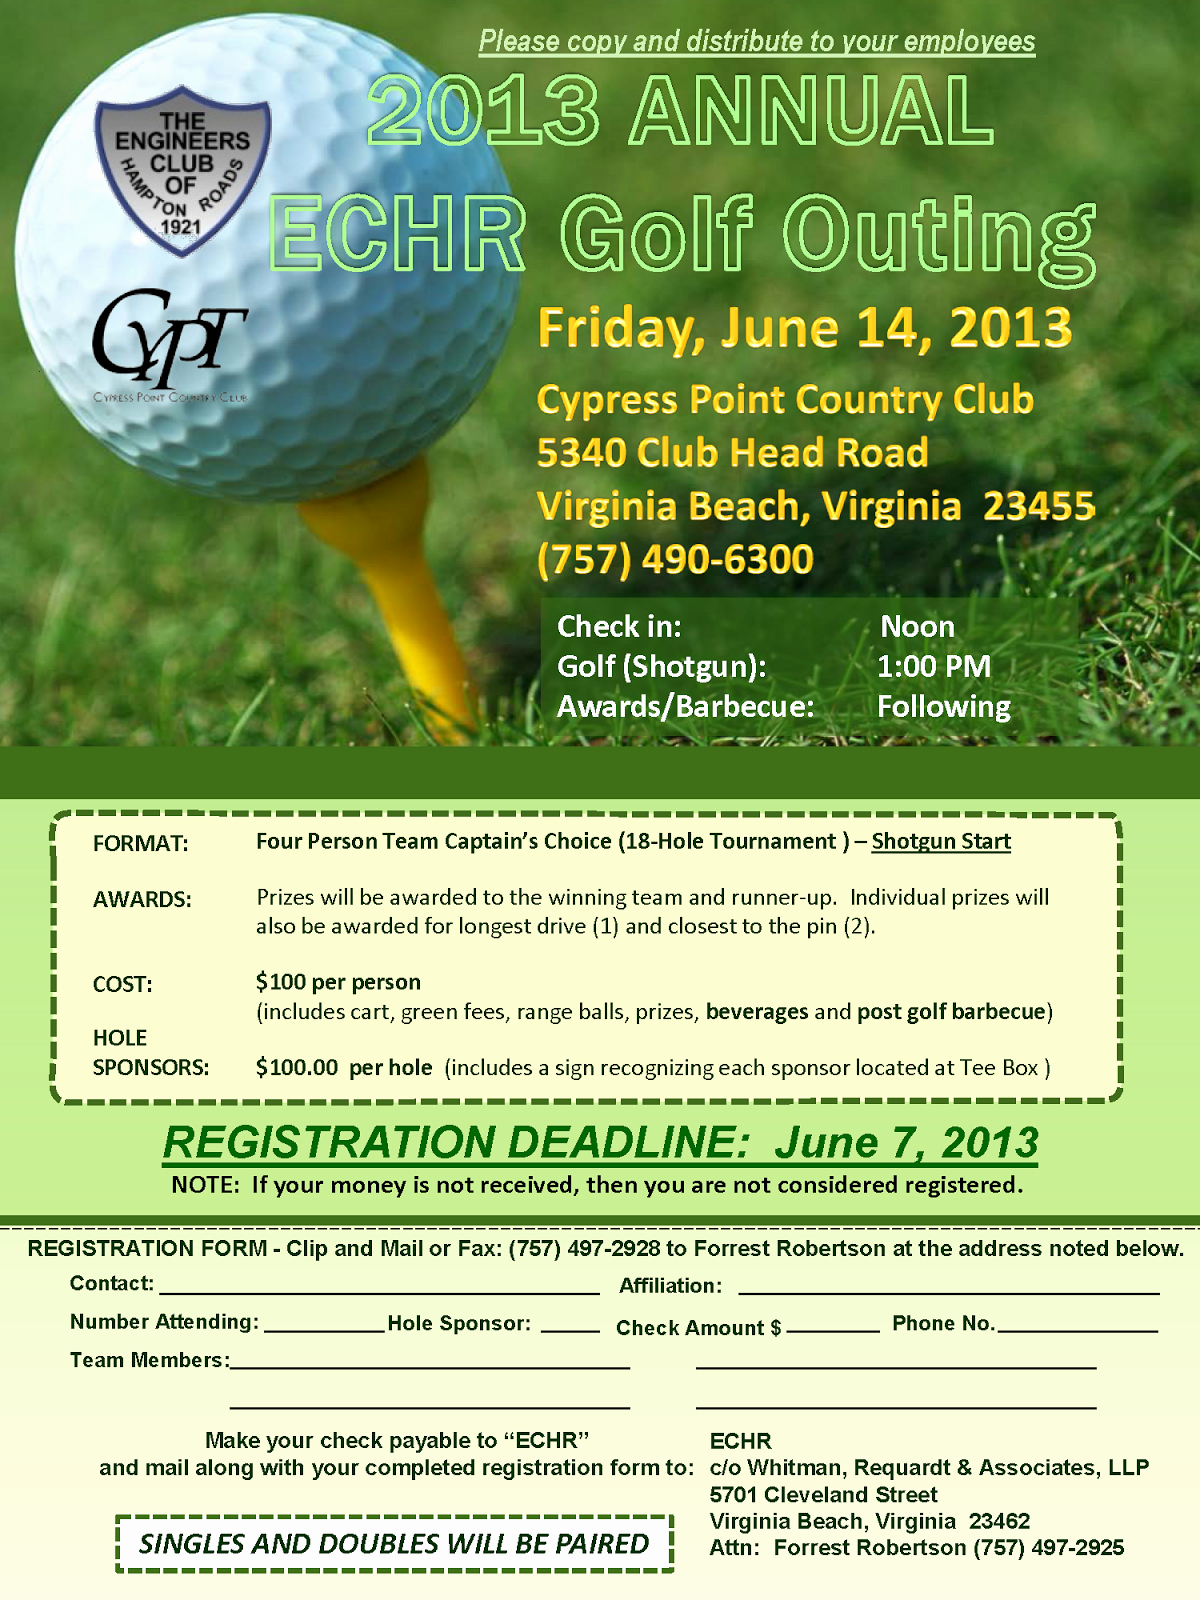 Golf tournament Flyer Template Word Best Of Golf Outing Flyer Template